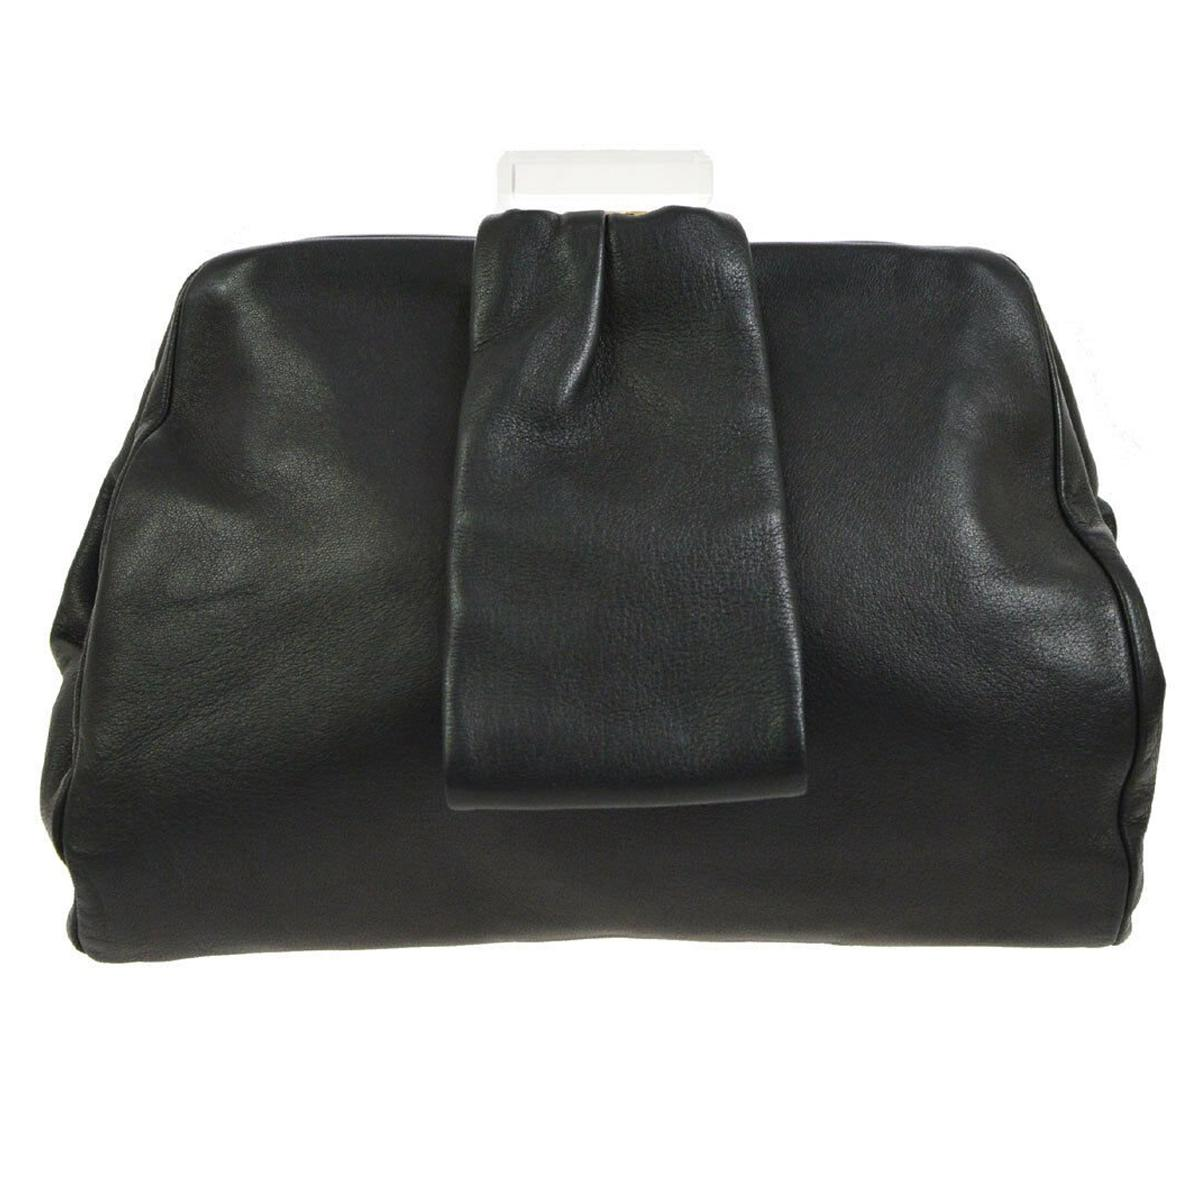 e4ffa3e827d65a Vintage Chanel Evening Bags and Minaudières - 282 For Sale at 1stdibs